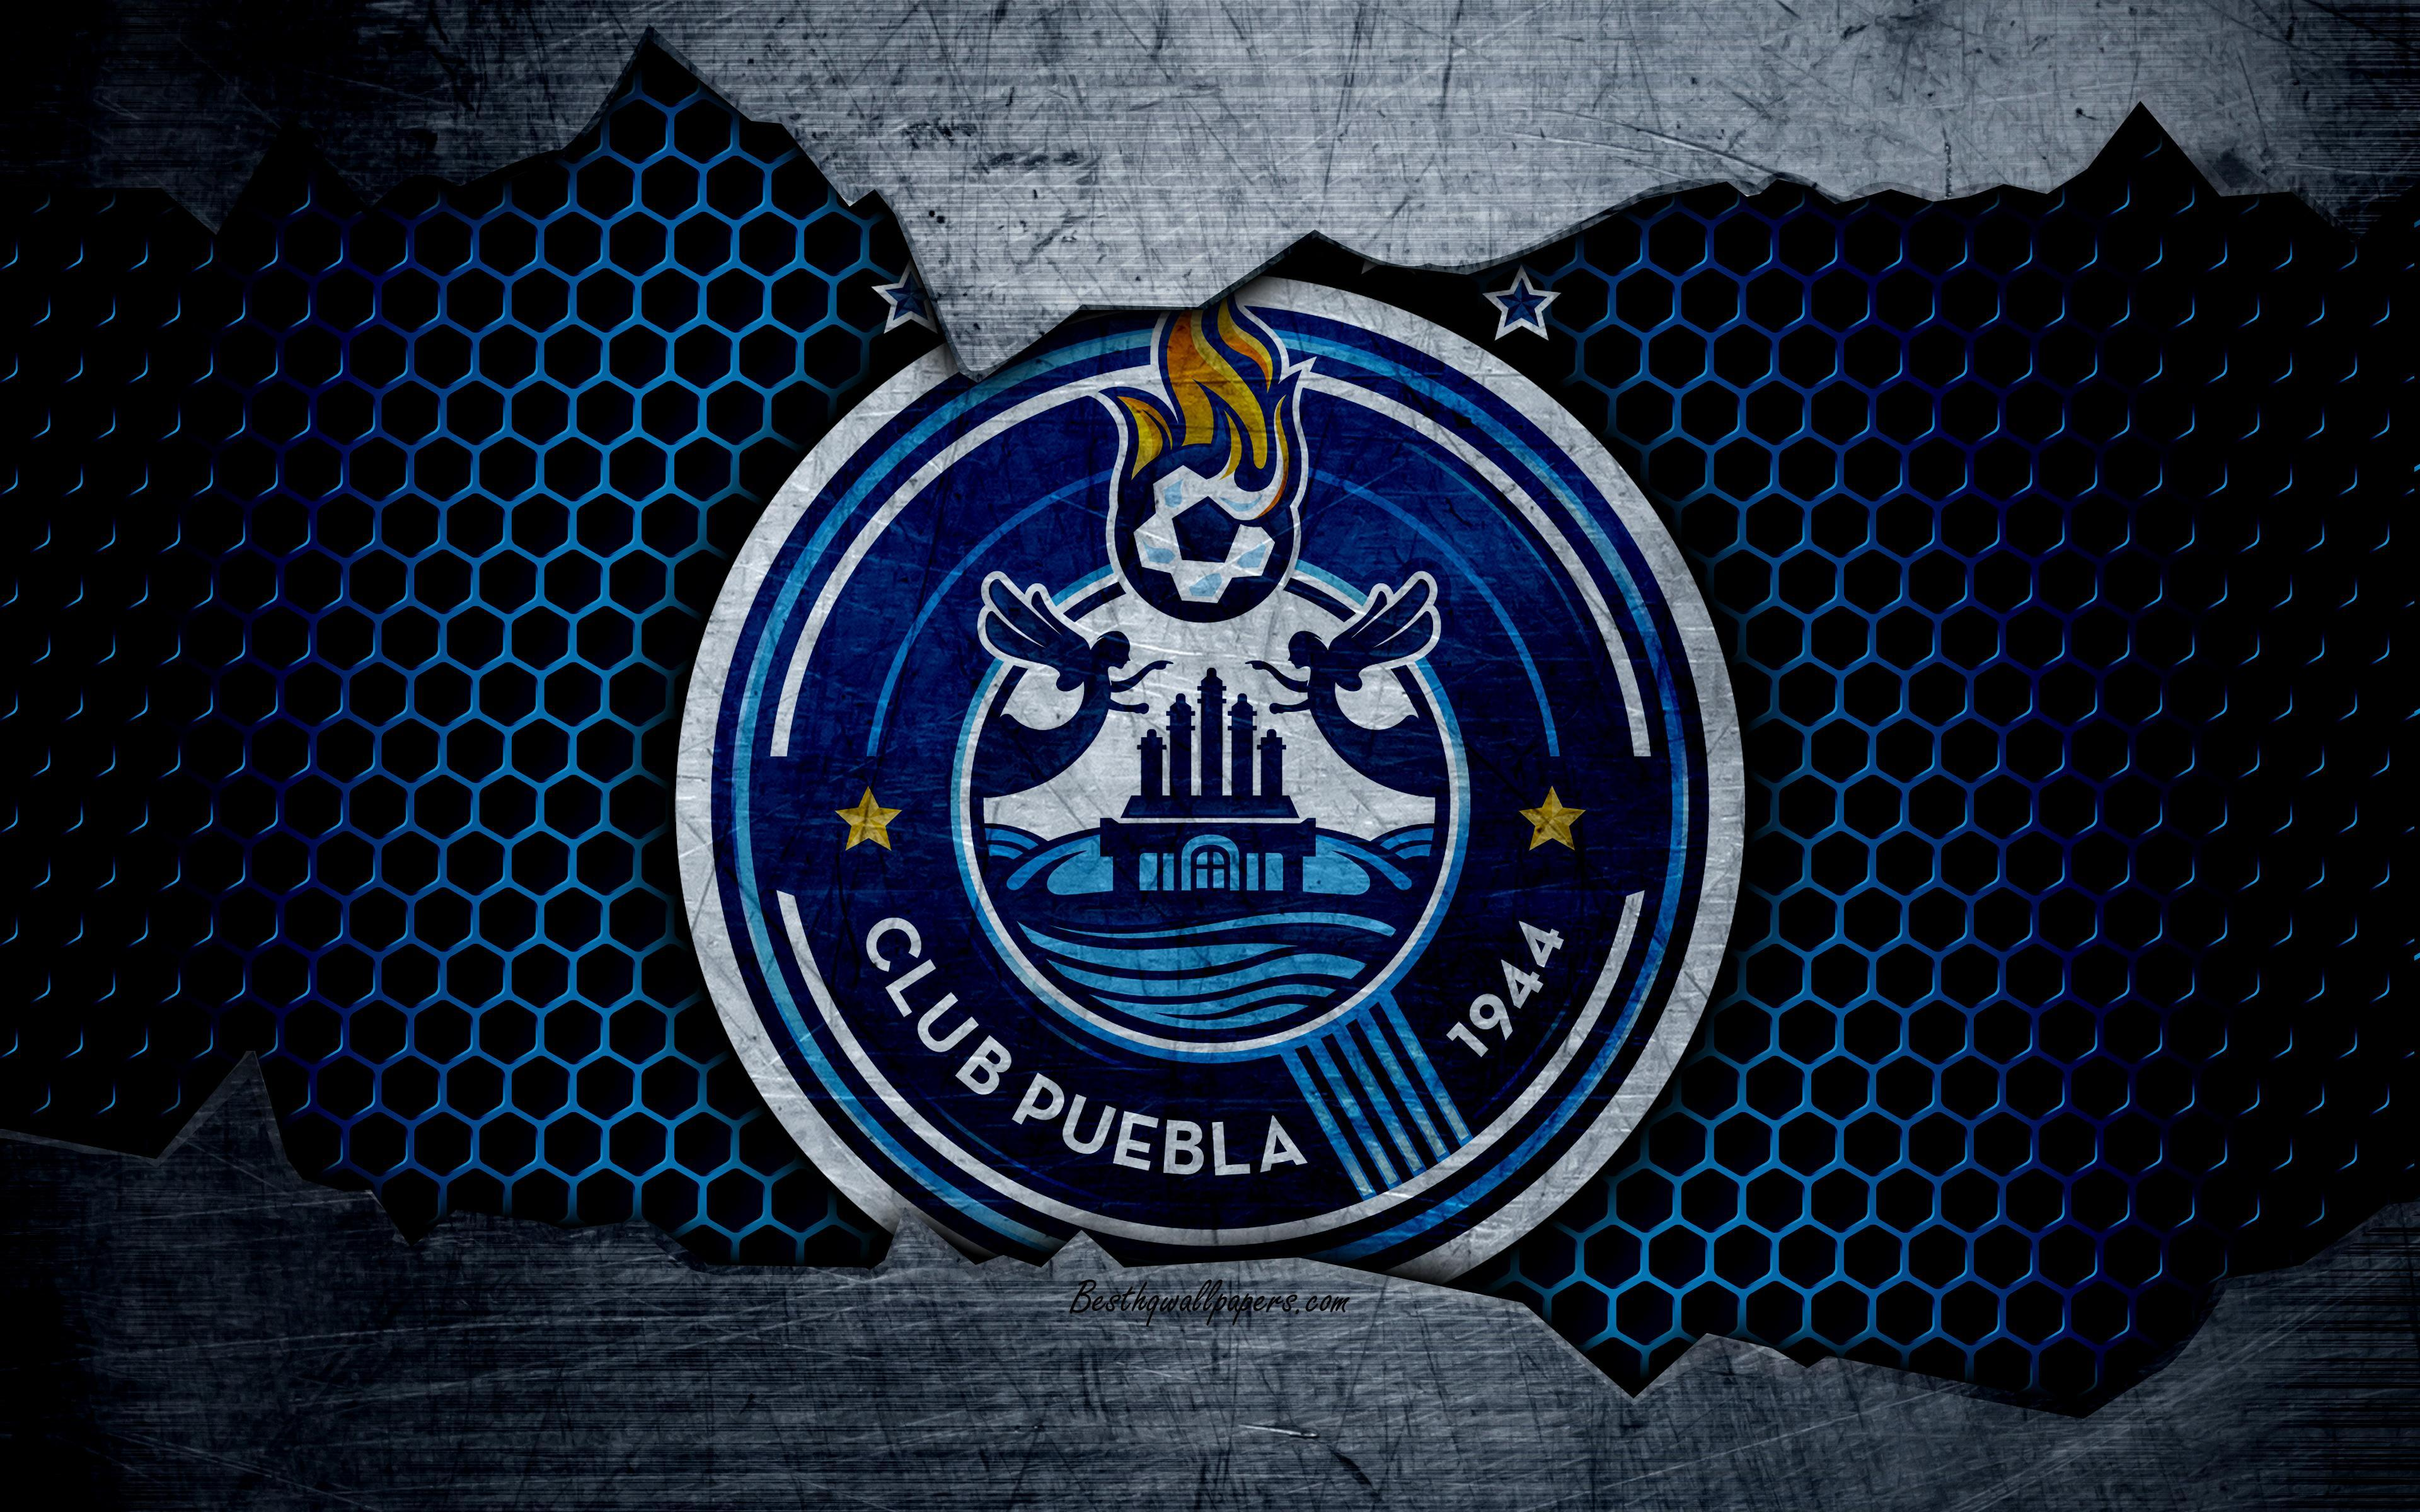 Download wallpapers Puebla, 4k, logo, Liga MX, soccer, Primera ...